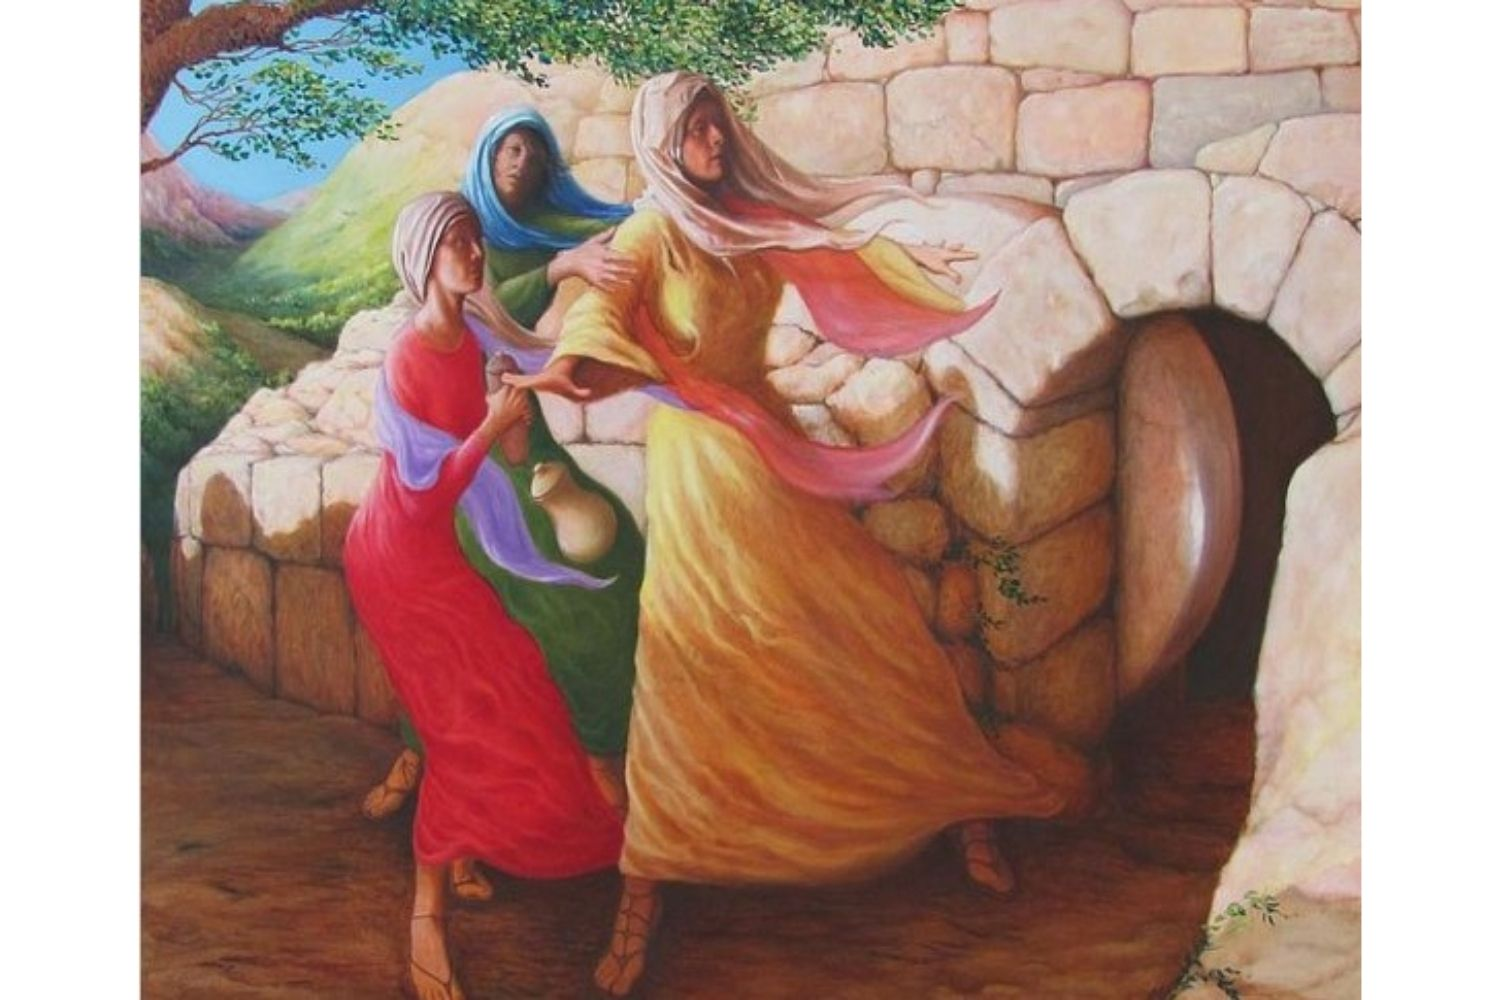 Mary Magdalene discovering the empty tomb by Herschel Pollard, Ph.D. Permission granted for use by artist, 2021. Pollard is a former staff member of the Television Radio and Film Commission of the Methodist Church, a predecessor agency to United Methodist Communications.